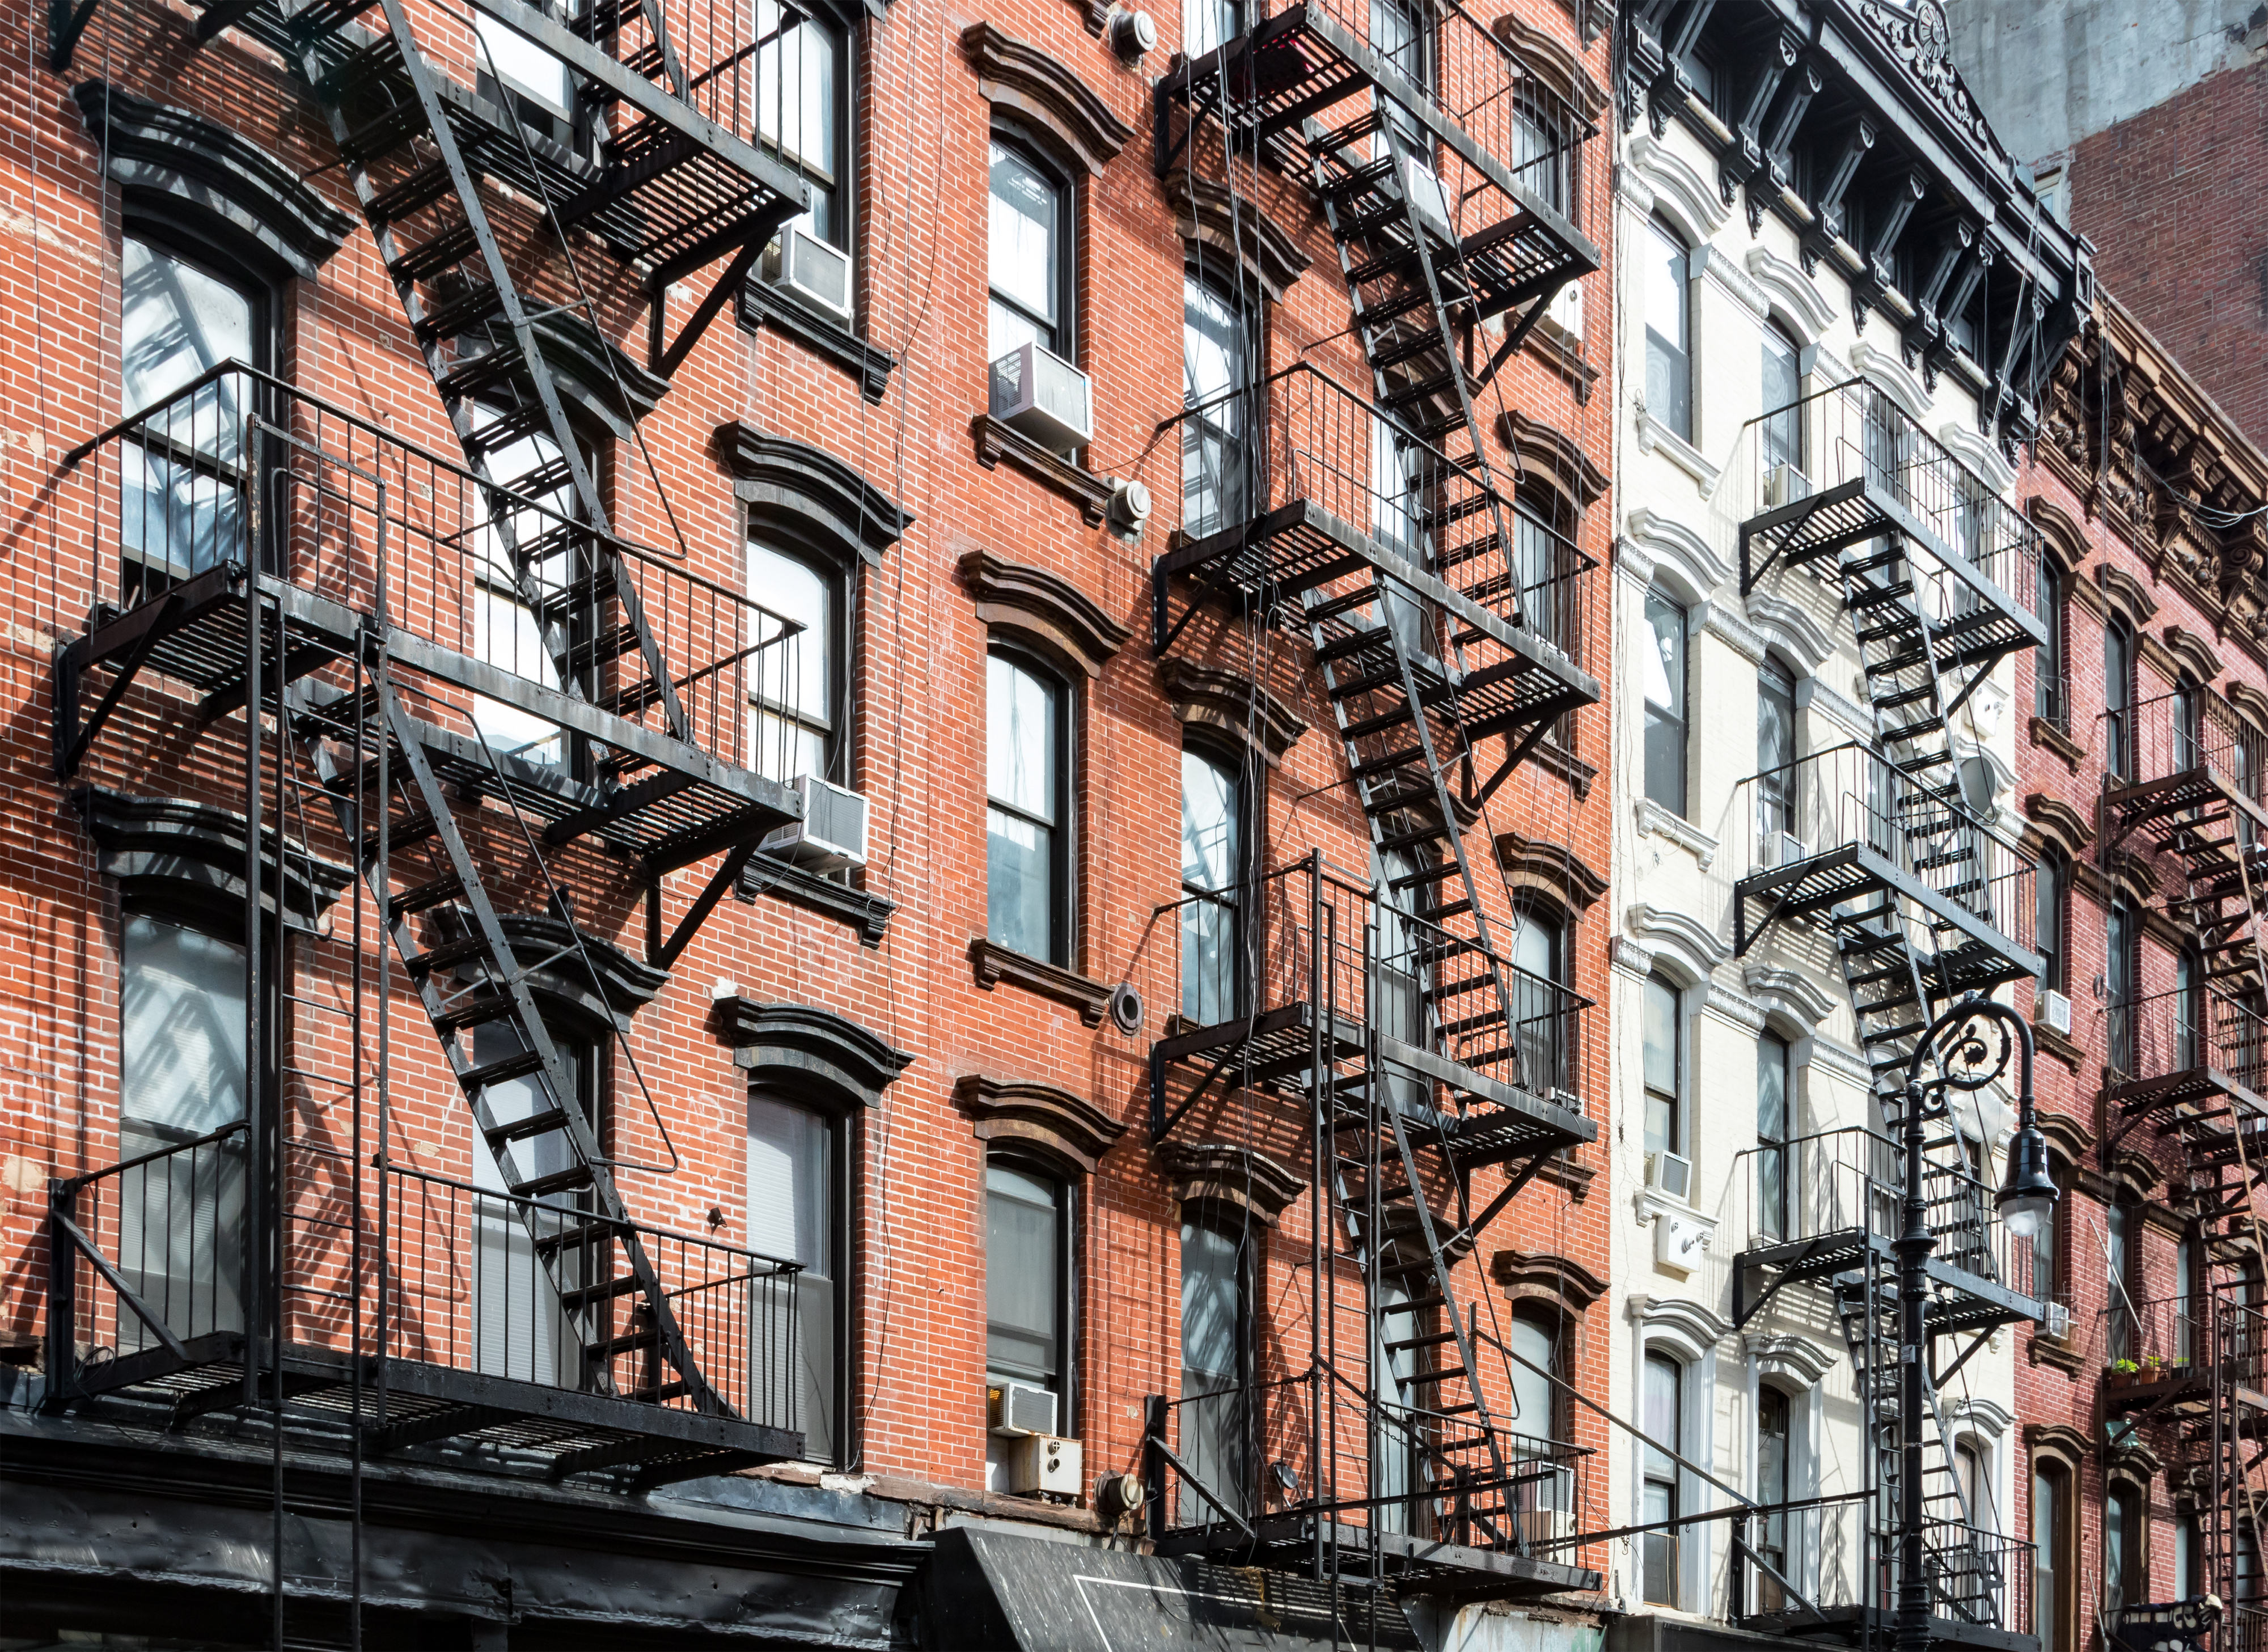 Buildings with fire escapes in NYC's Lower East Side.